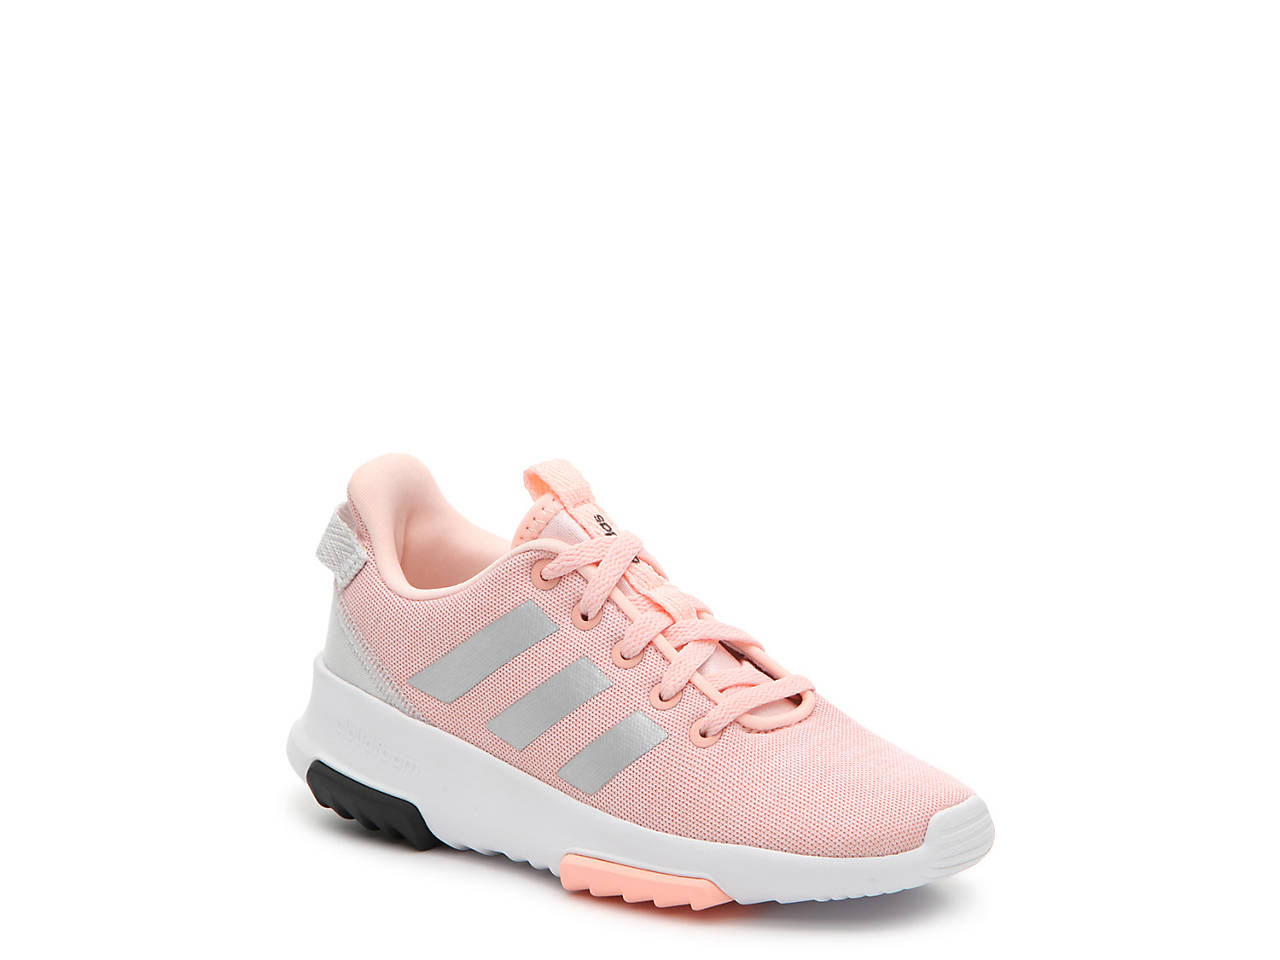 060abdae7 adidas Racer TR Toddler   Youth Sneaker Kids Shoes